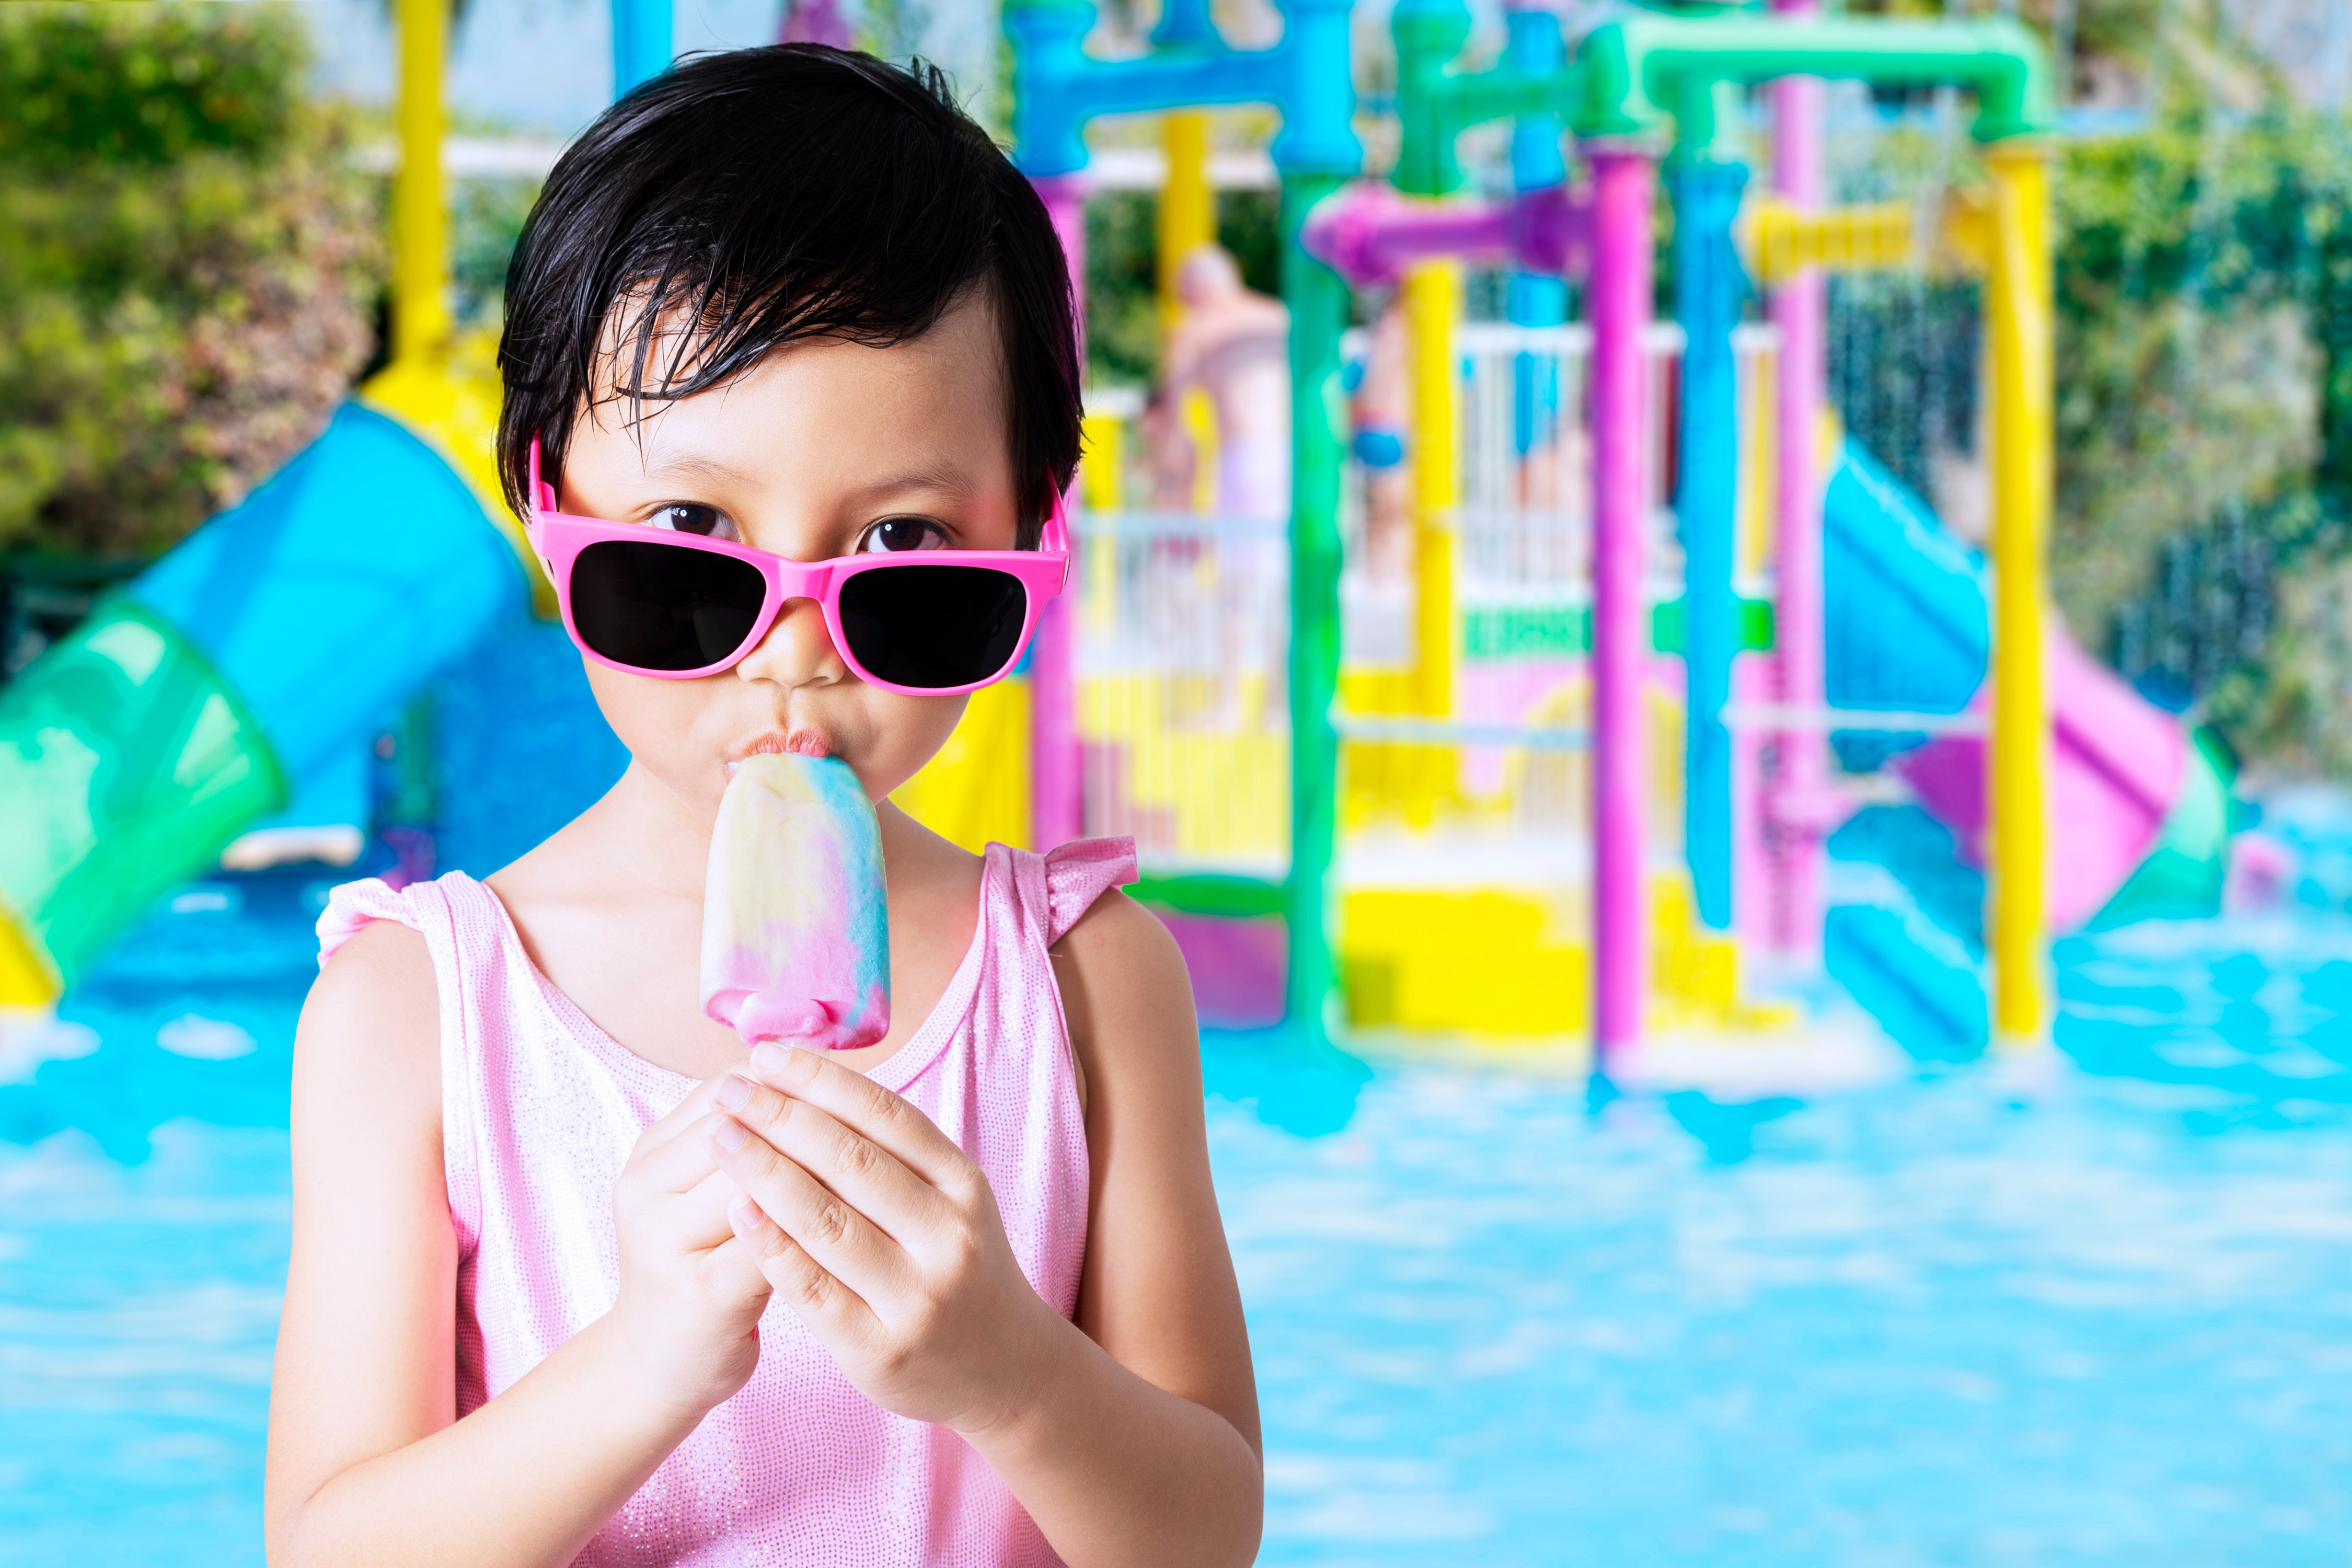 little girl in pink bathing suit eating popsicle at water park